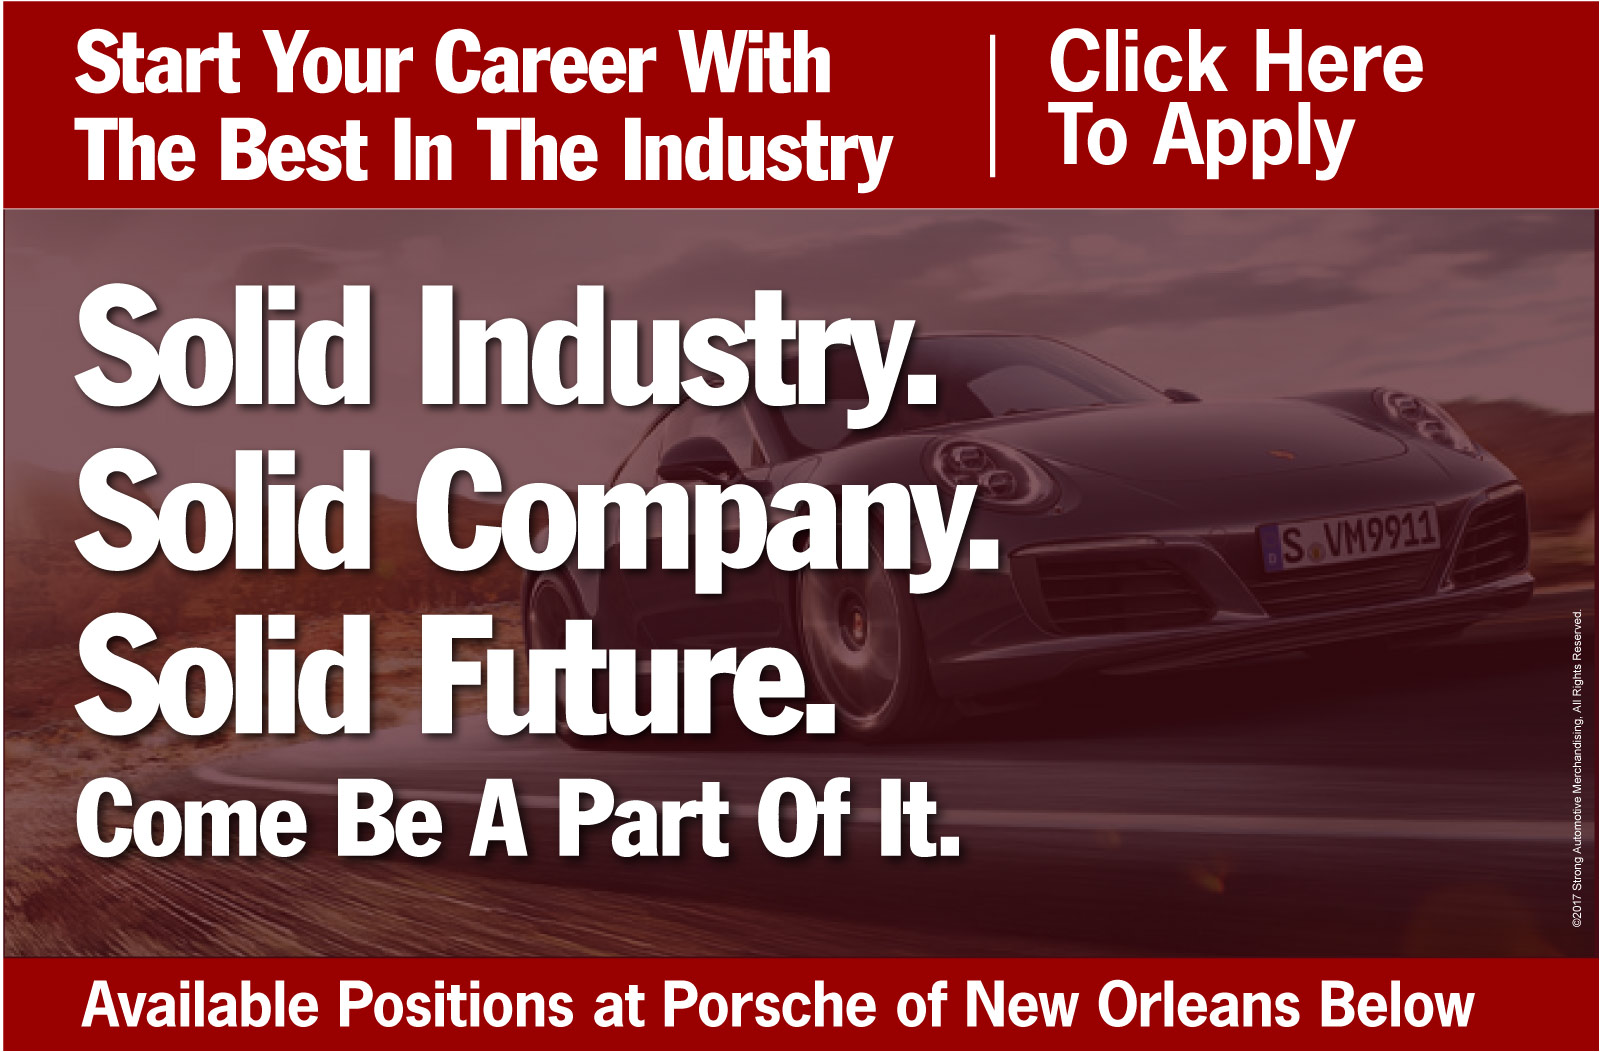 Porsche of New Orleans Careers